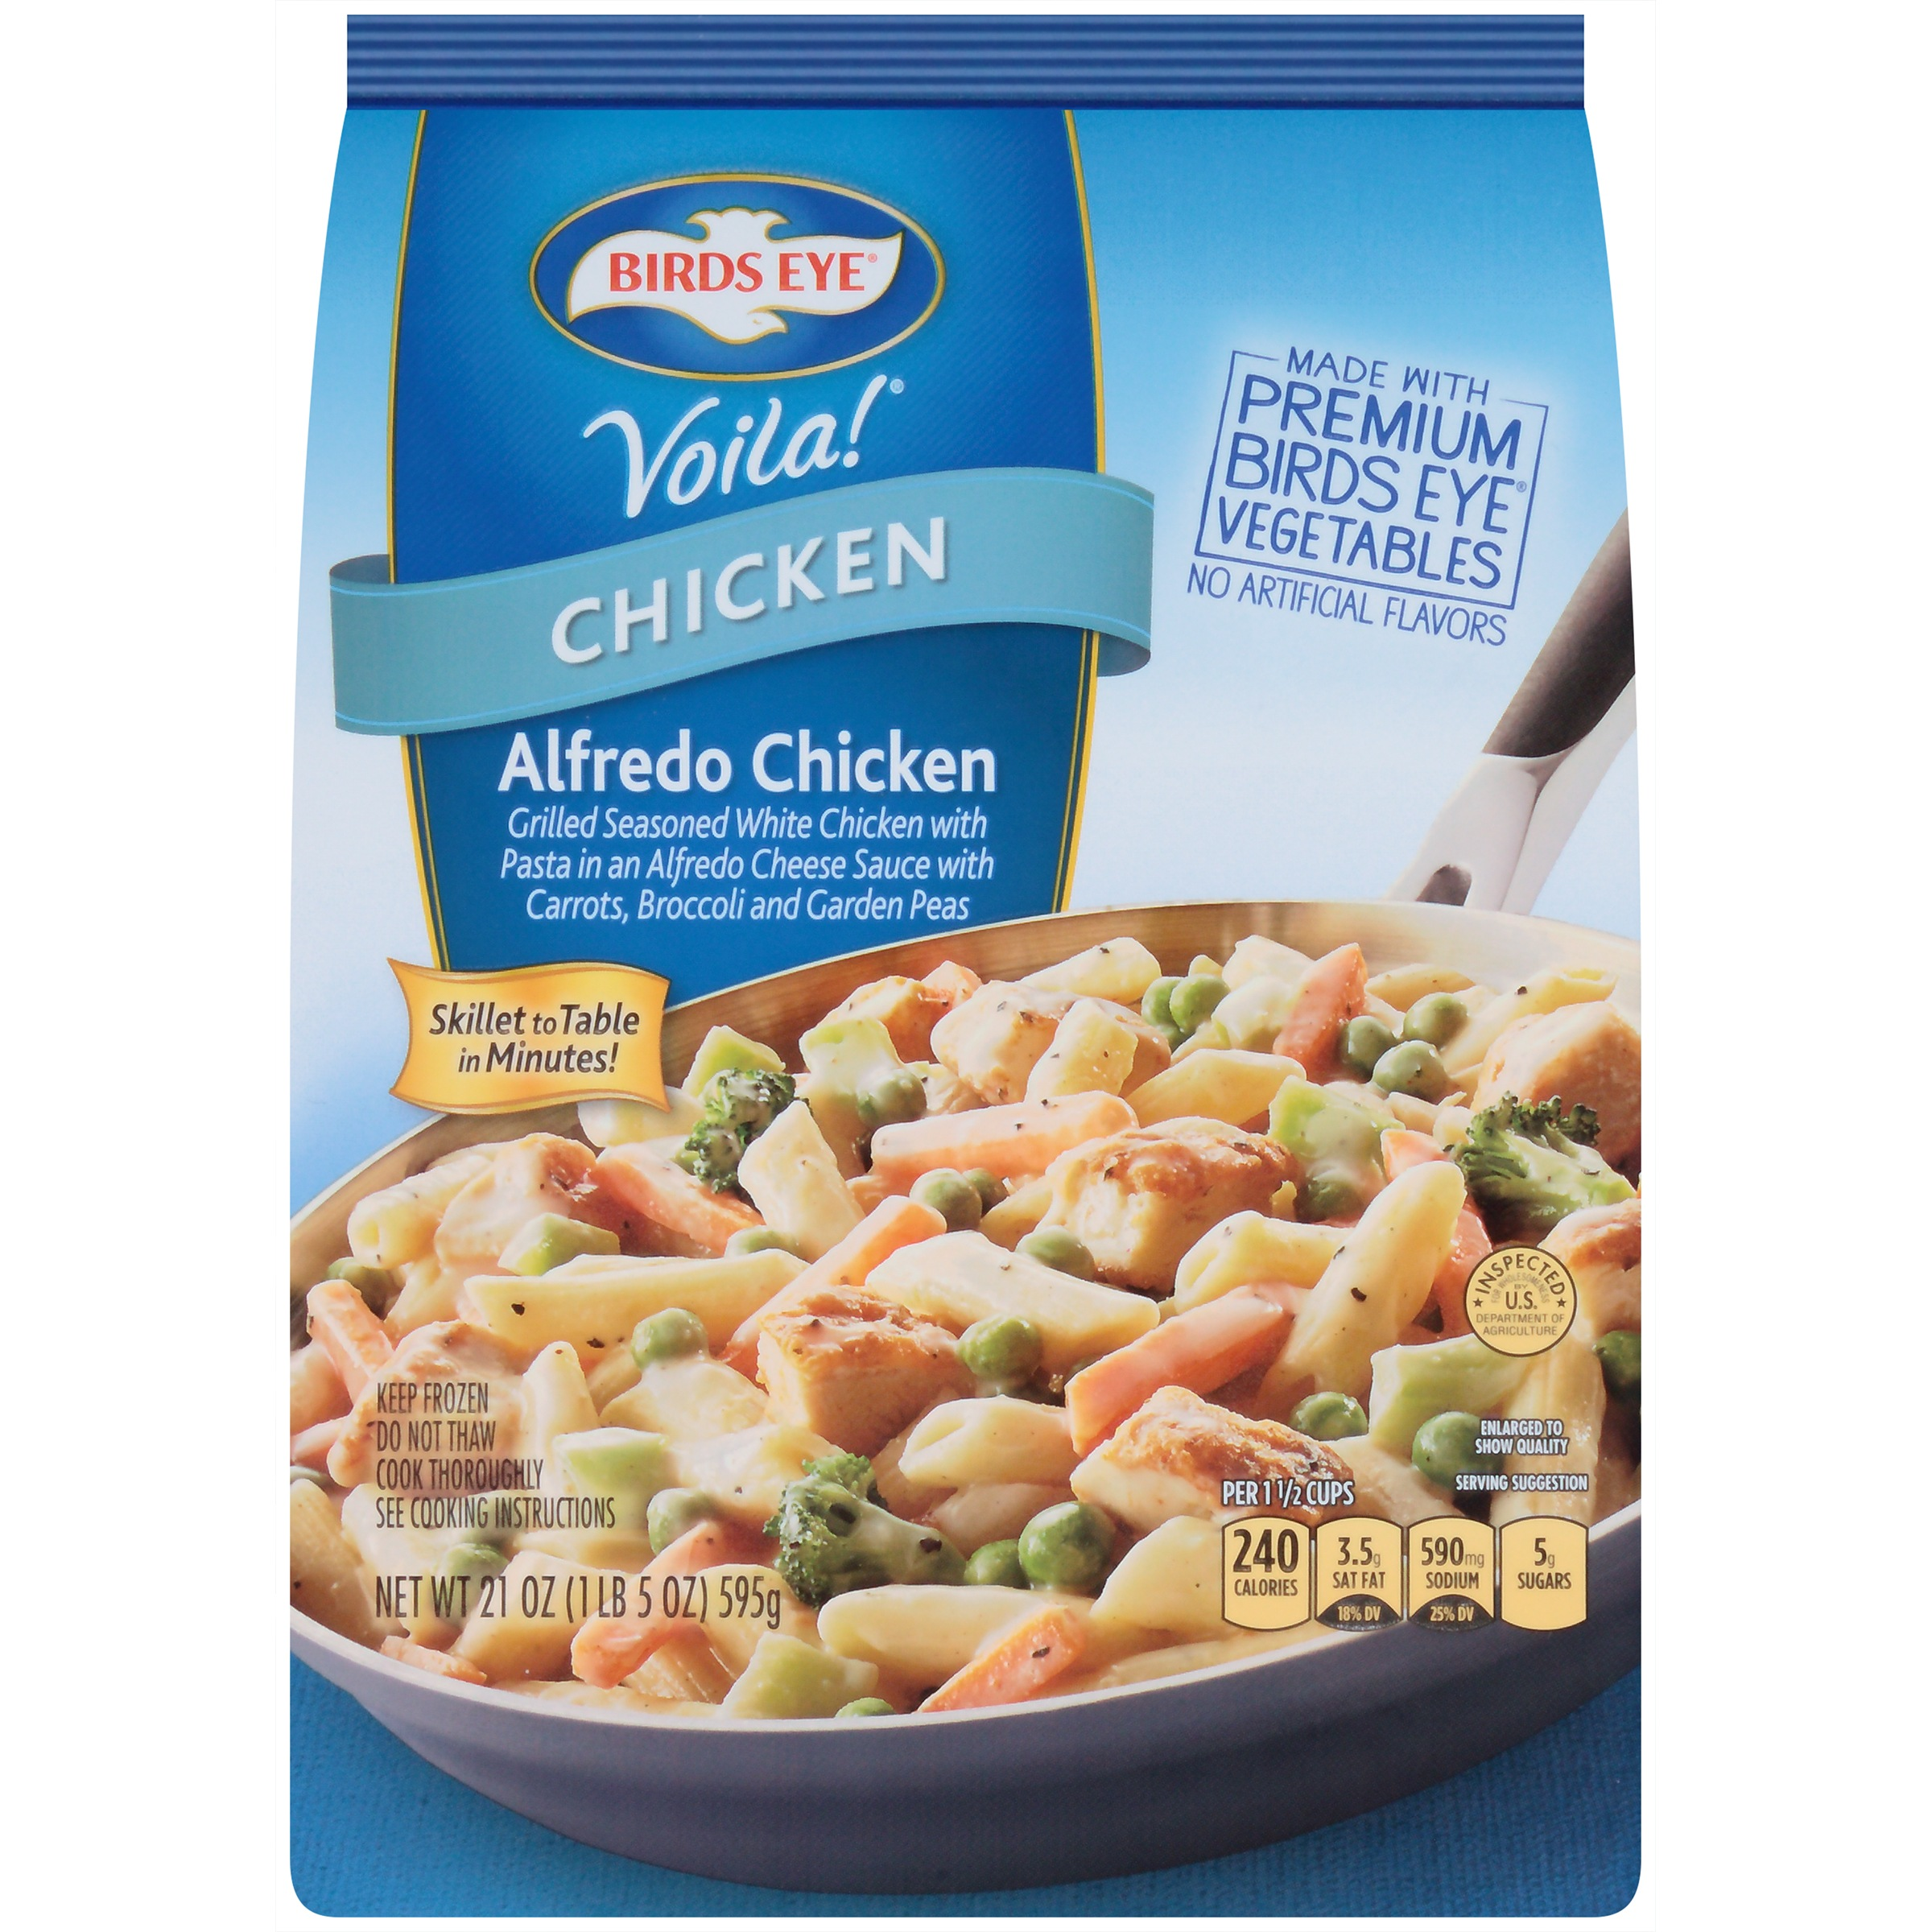 Birds Eye® Voila!® Alfredo Chicken 21 oz. Bag